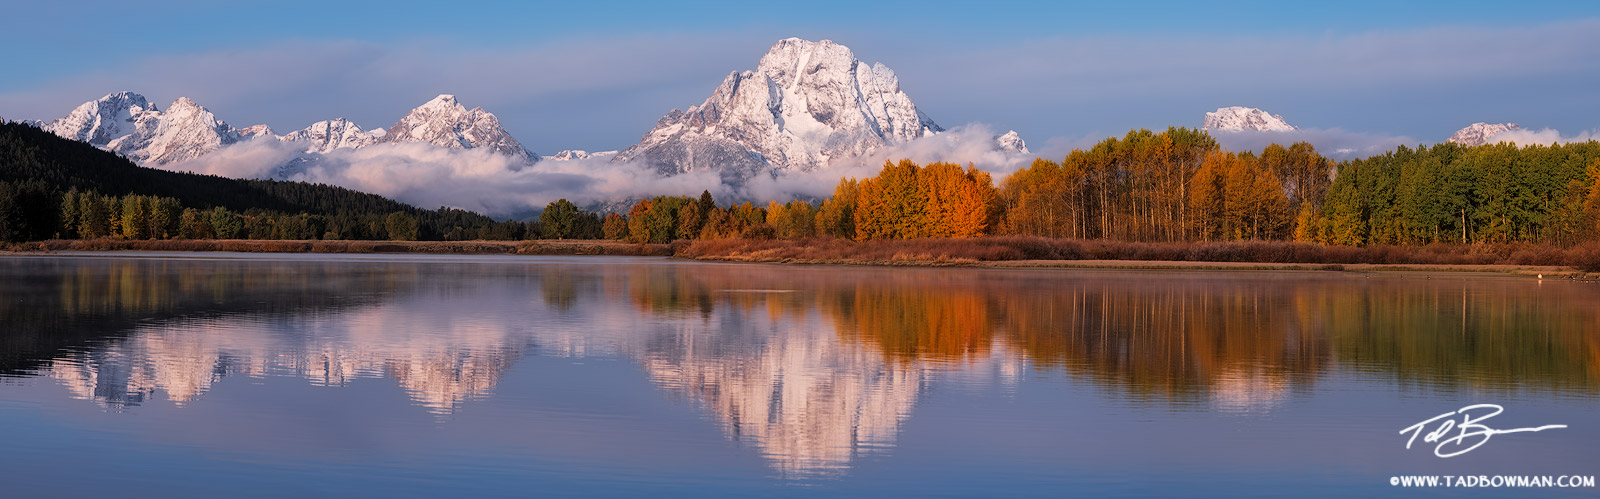 Wyoming, Grand Tetons, Grand Teton photos, Grand Teton fall photos, fall, autumn, fall foliage, Oxbow Bend, sunrise, snow, snowy, Grand Tetons snow, photo